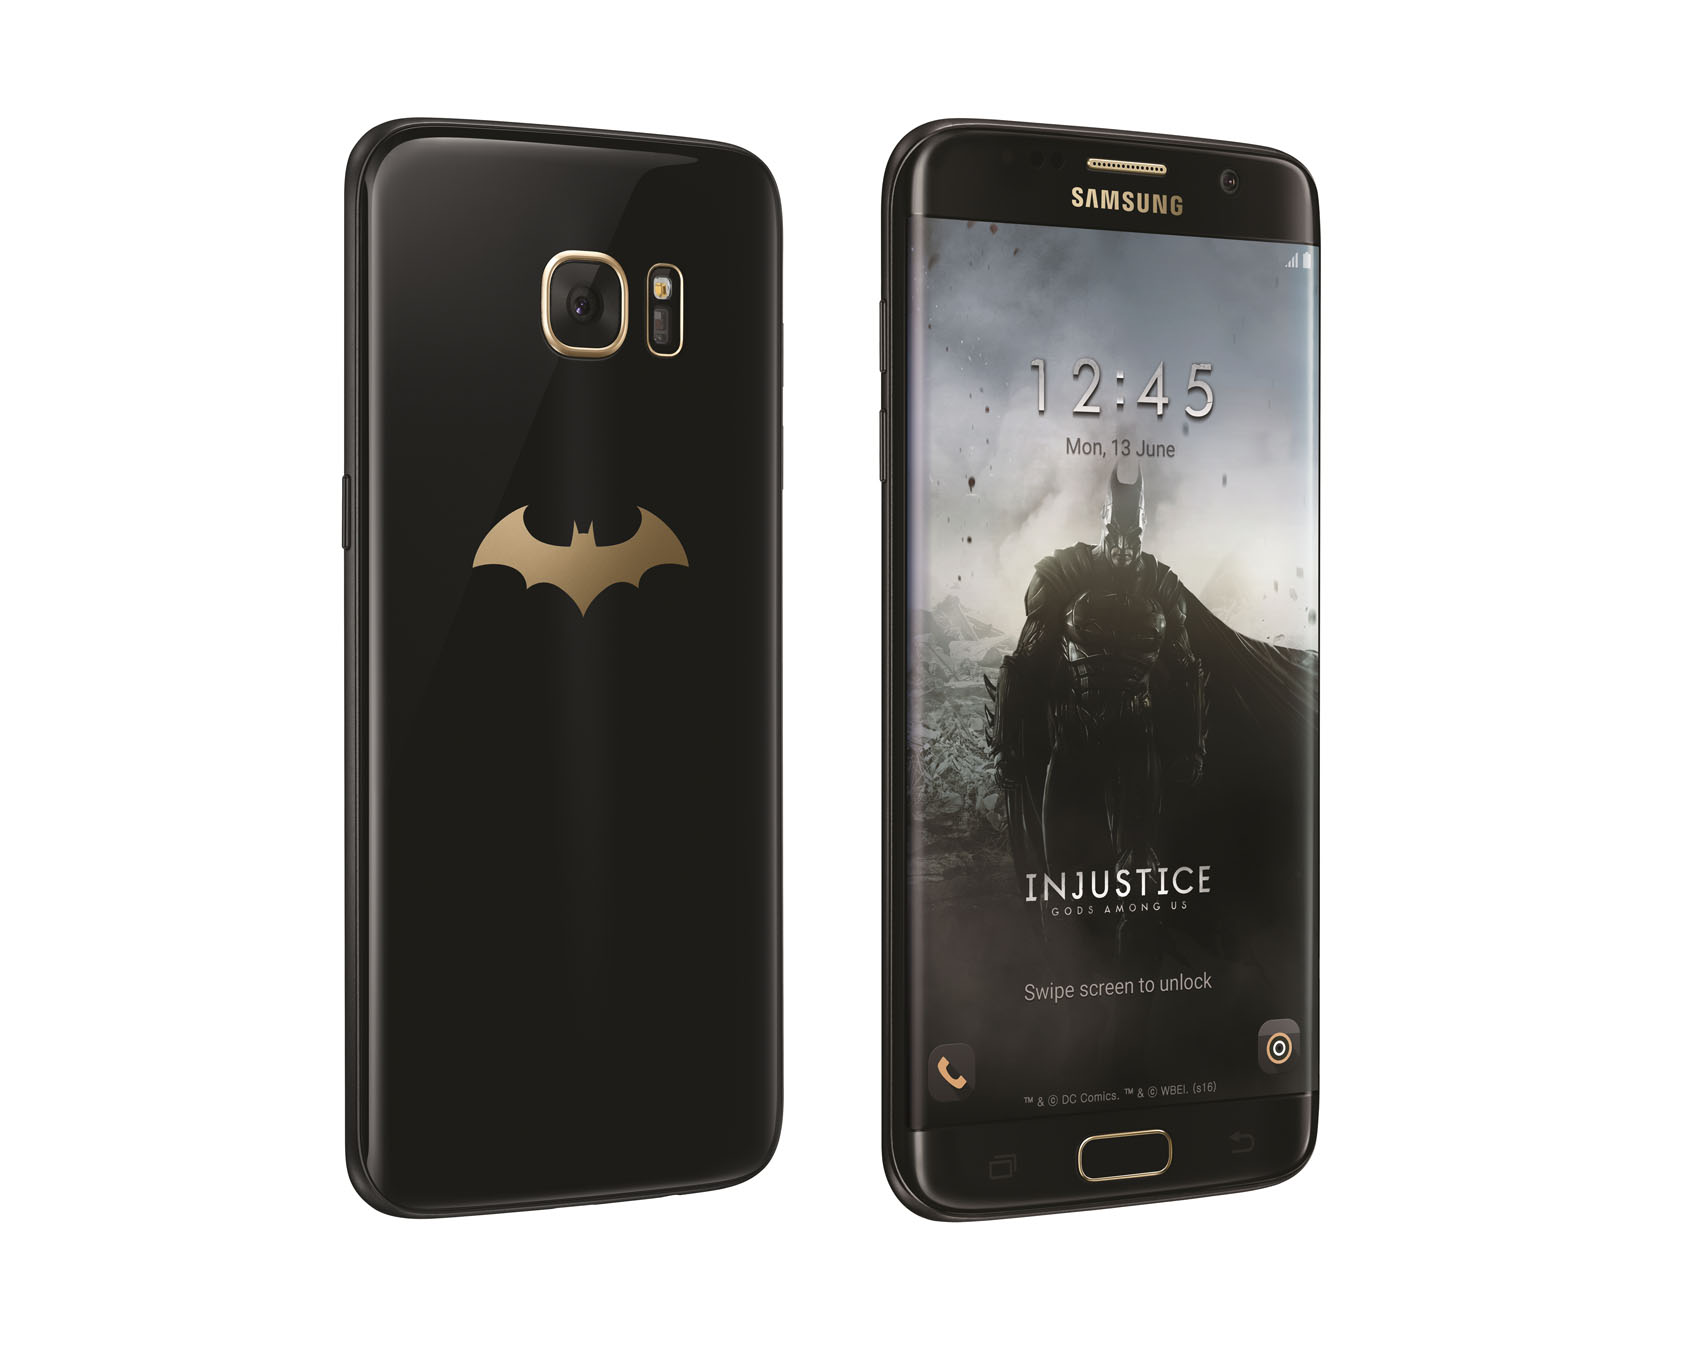 Samsung Galaxy S7 edge Injustice Edition_2